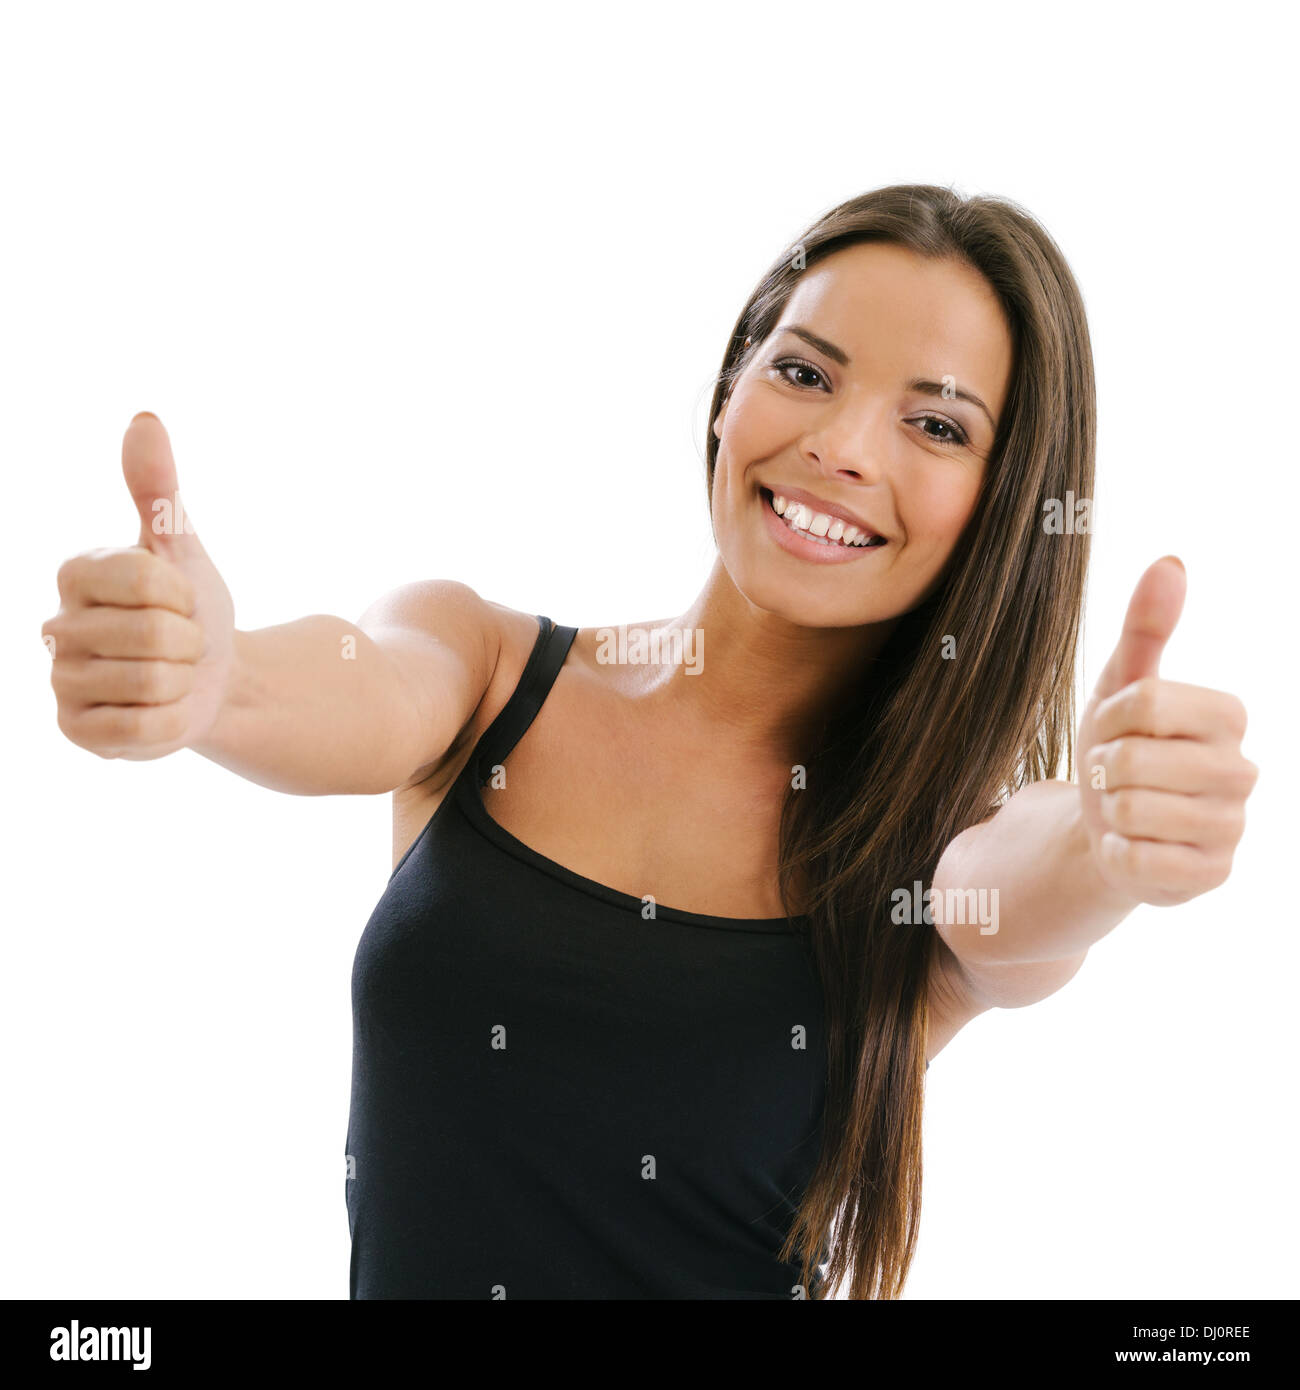 Photo of an excited young female doing the two thumbs up gesture over white background. - Stock Image